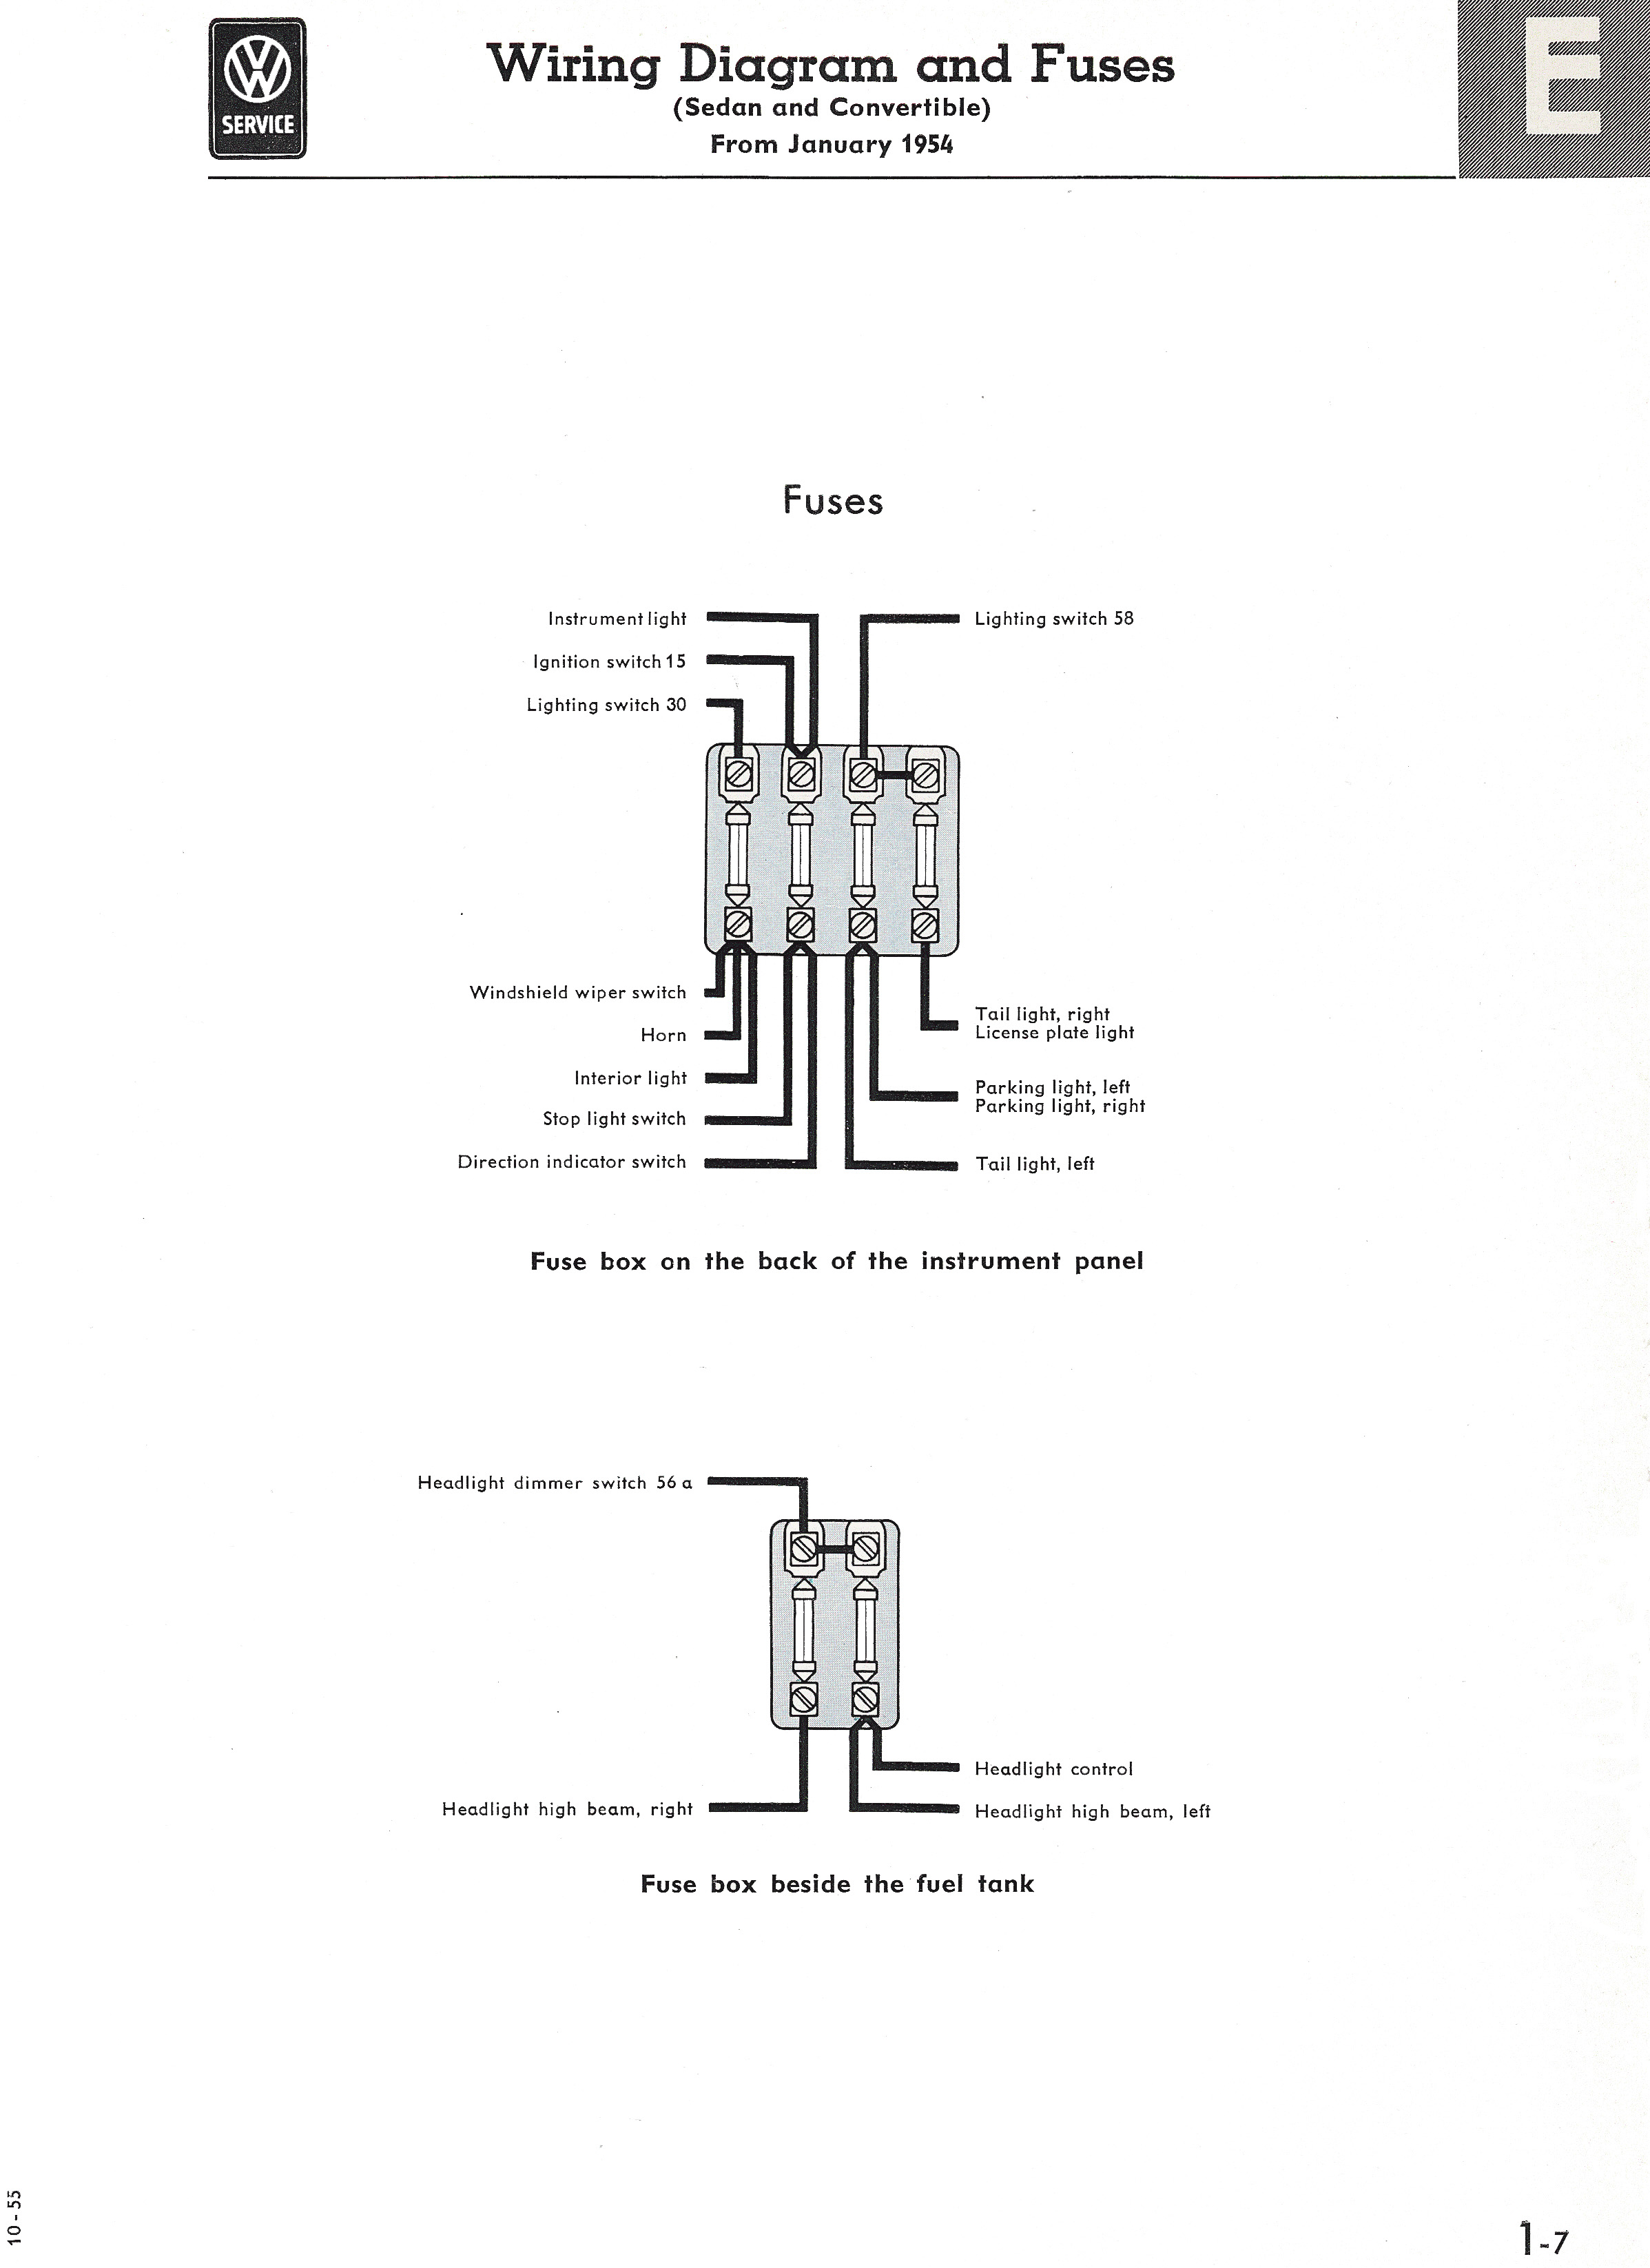 Type 1 Wiring Diagrams Diagram Switch